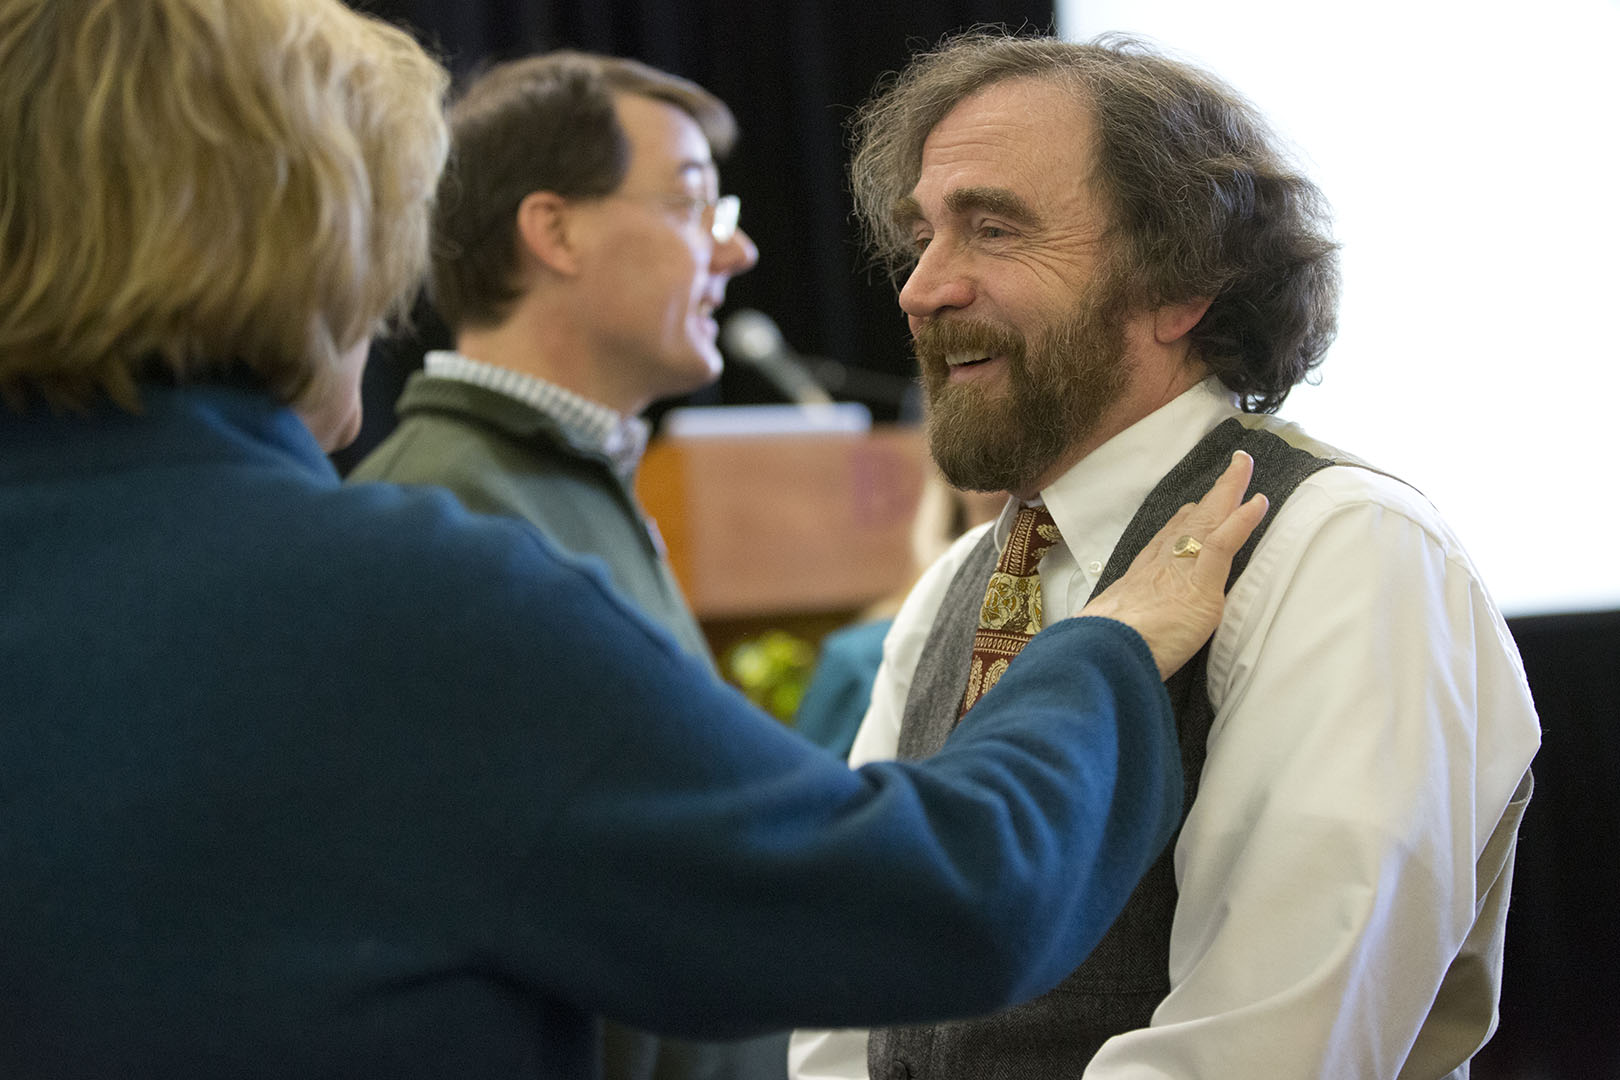 Glen Lawson receives congratulations from President Spencer at the celebration of his appointment as the Charles A. Dana Professor of Chemistry. Six professors were appointed to named professorships in 2013. Phyllis Graber Jensen/Bates College.